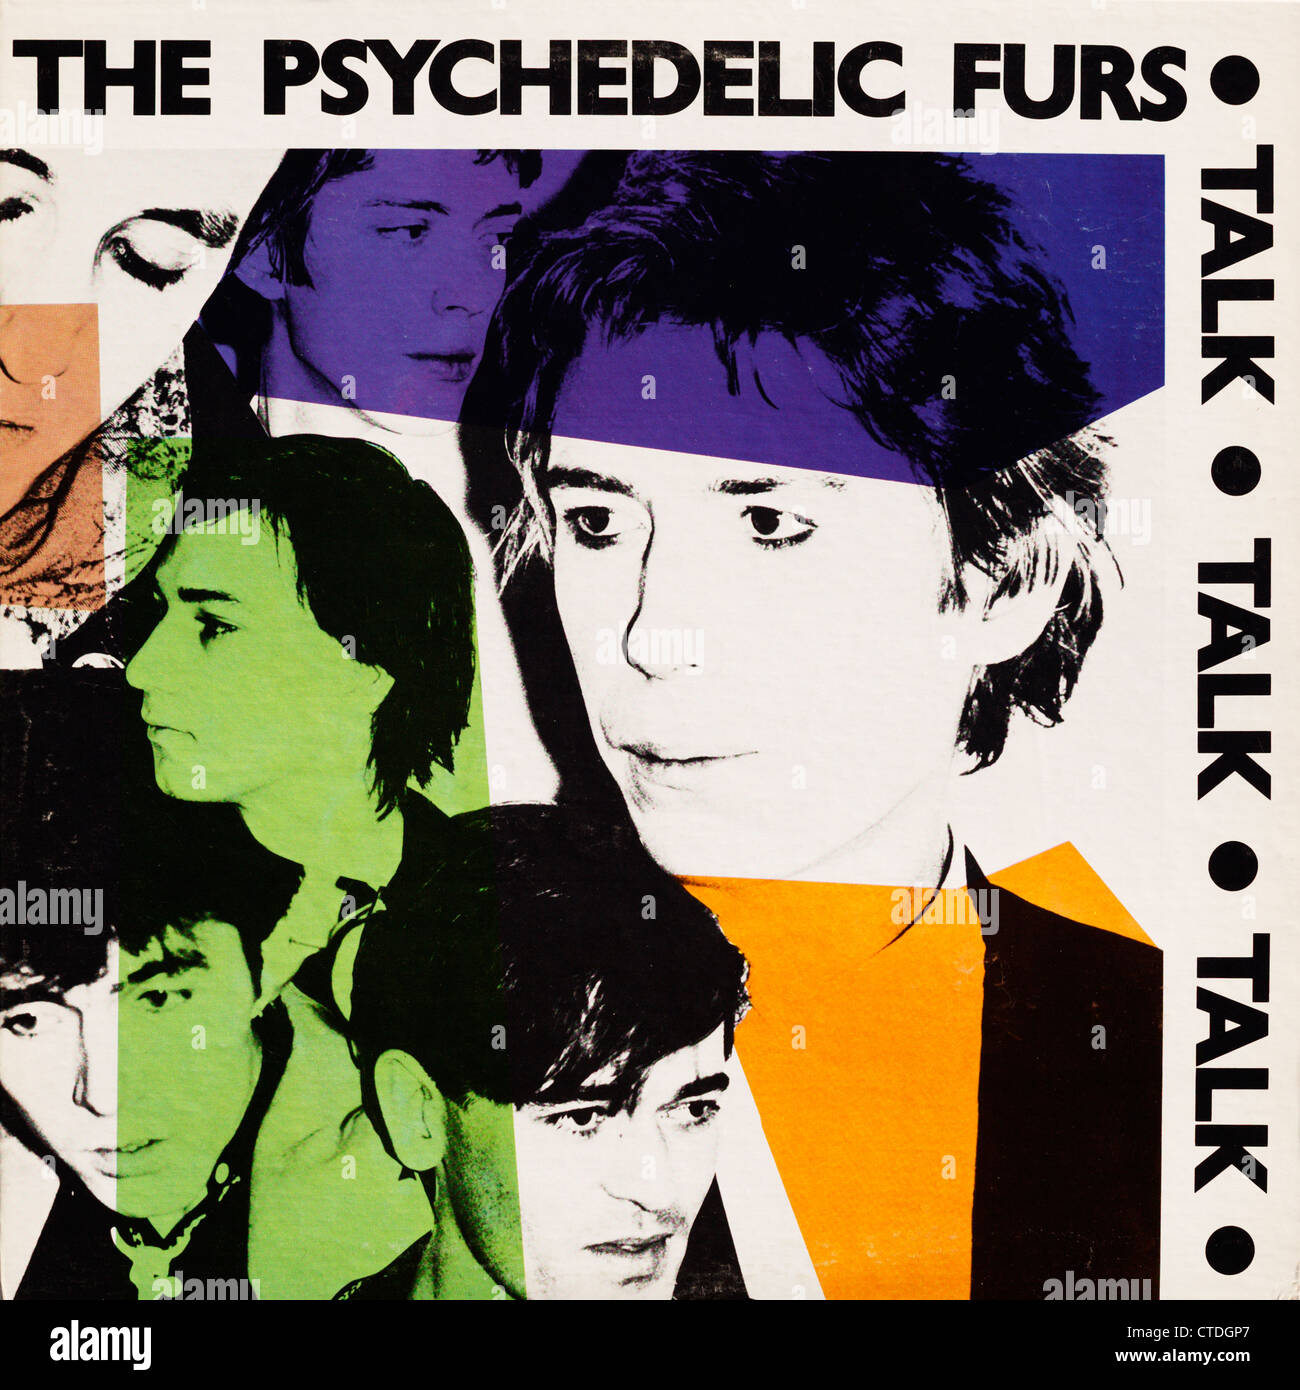 Vinyl LP record album cover from the Psychedelic Furs - Talk